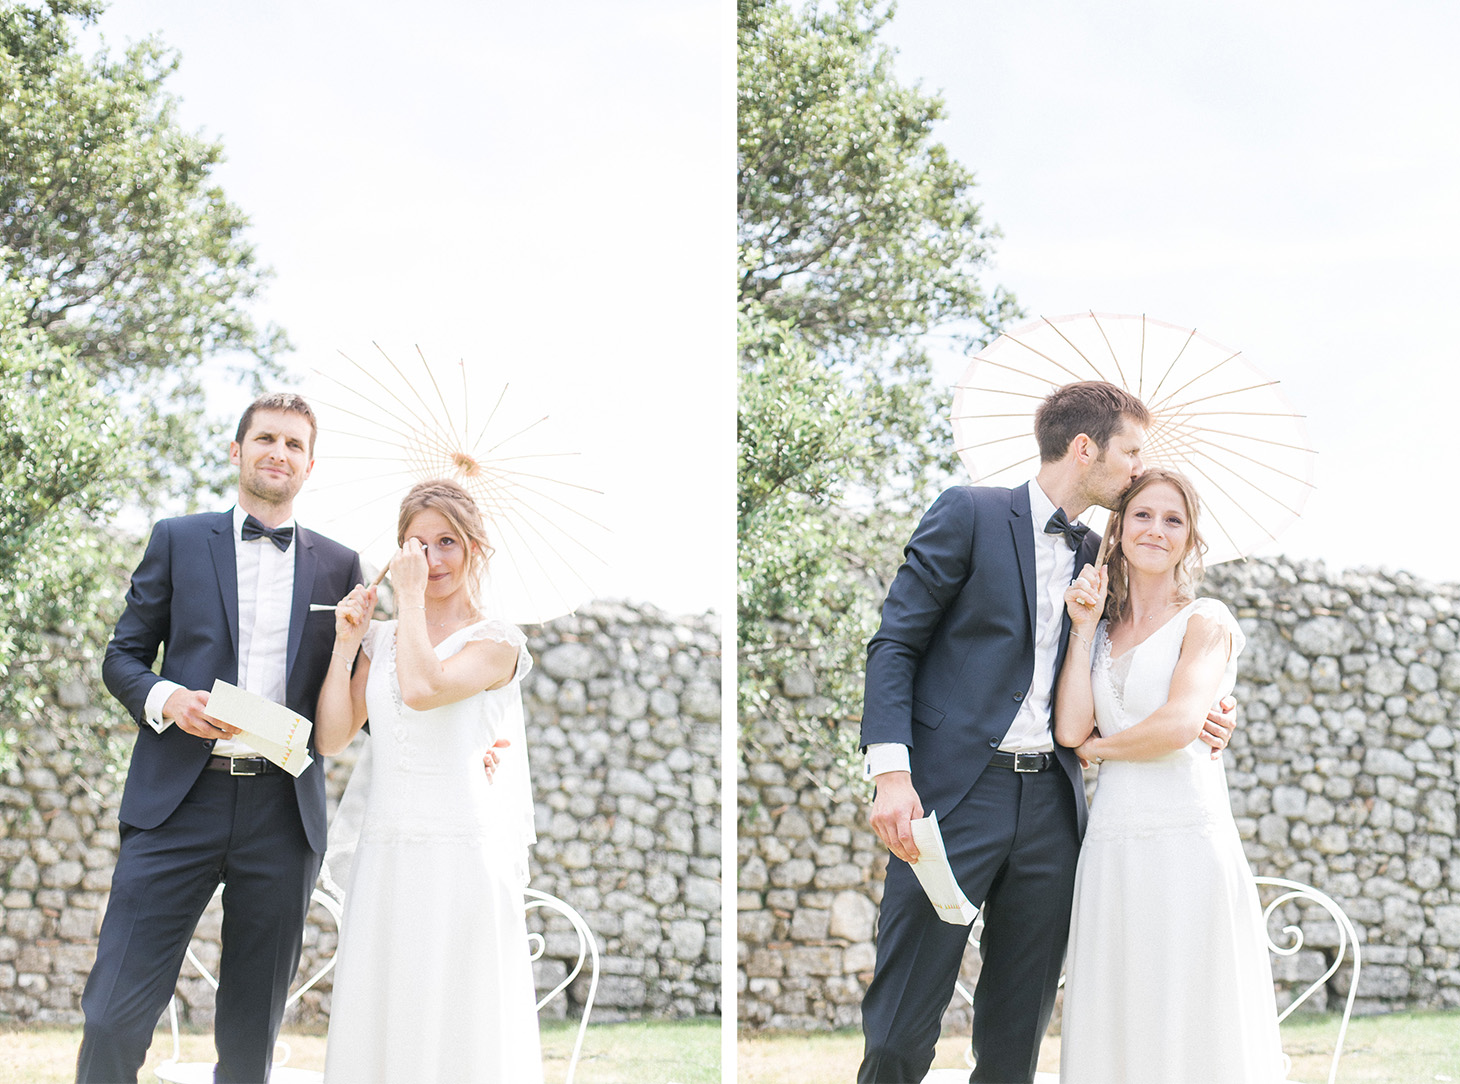 french_riviera_wedding_photographer-063 copie